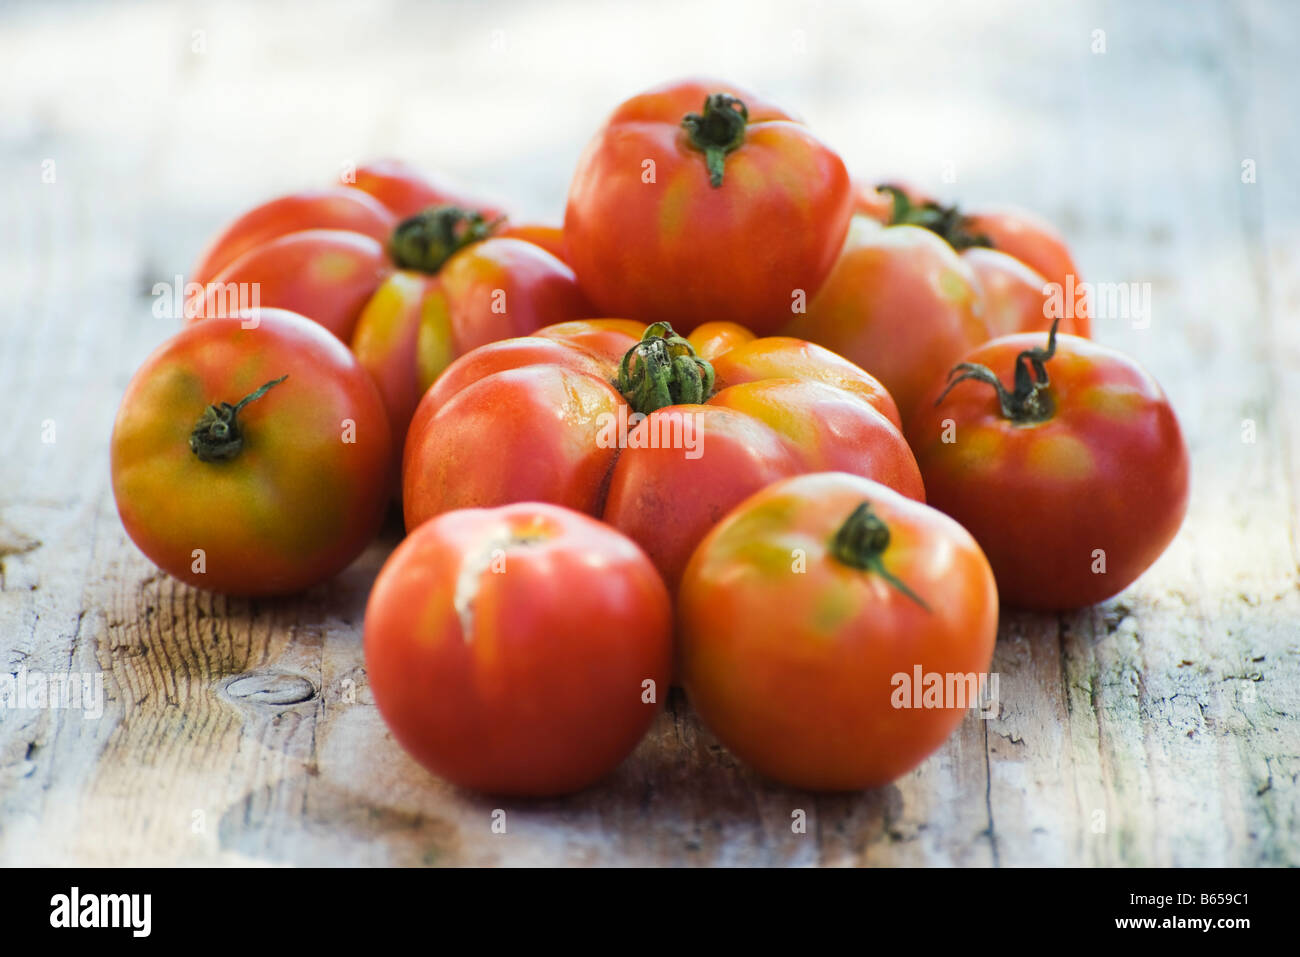 Pile of ripe tomatoes - Stock Image